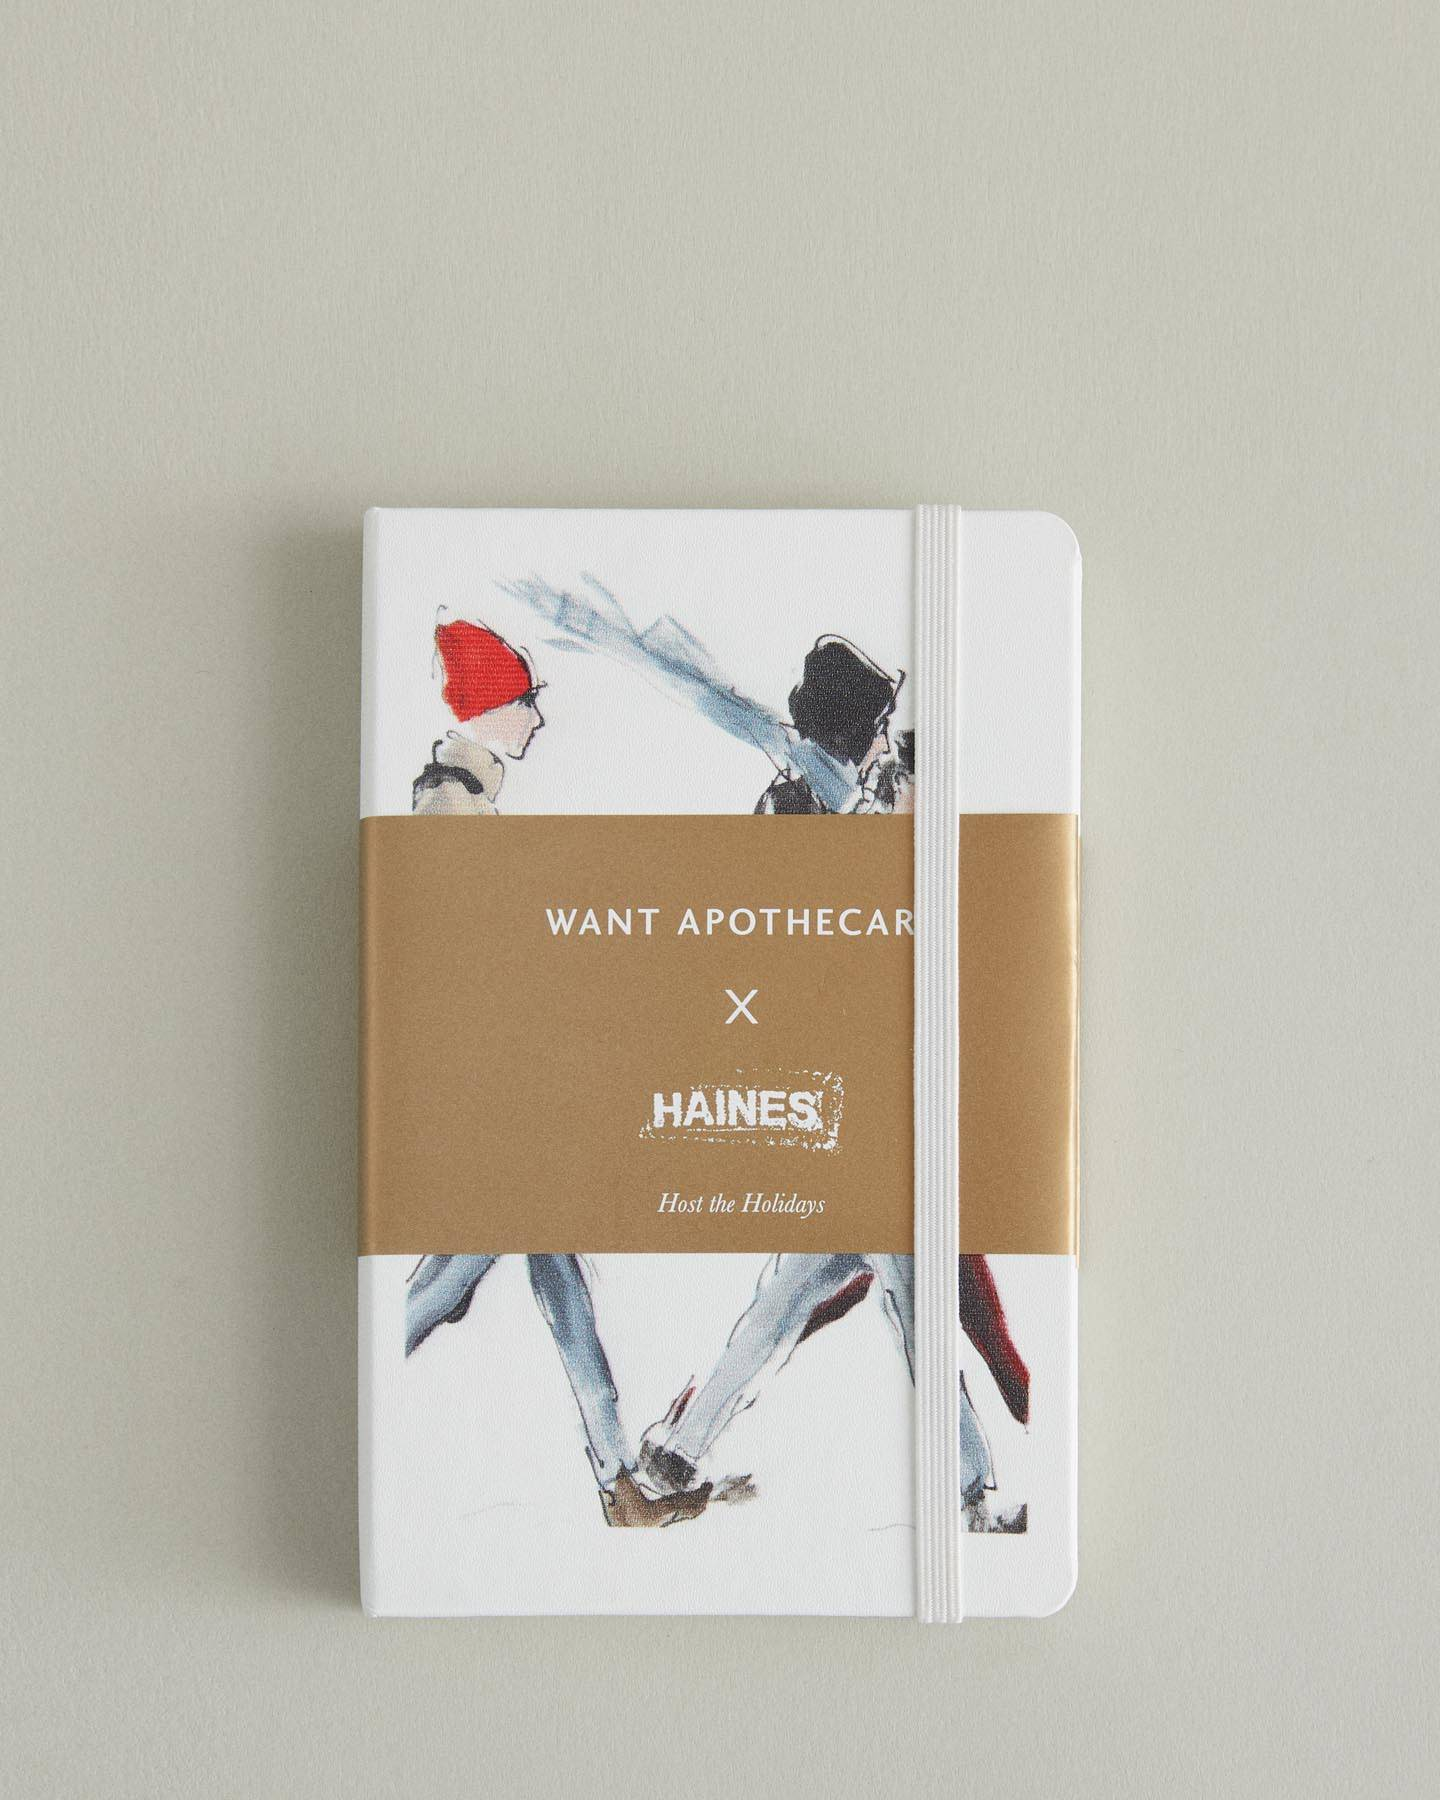 https://int.wantapothecary.com/collections/richard-haines-collaboration-host-the-holidays/products/richard-haines-classic-moleskine-notebook